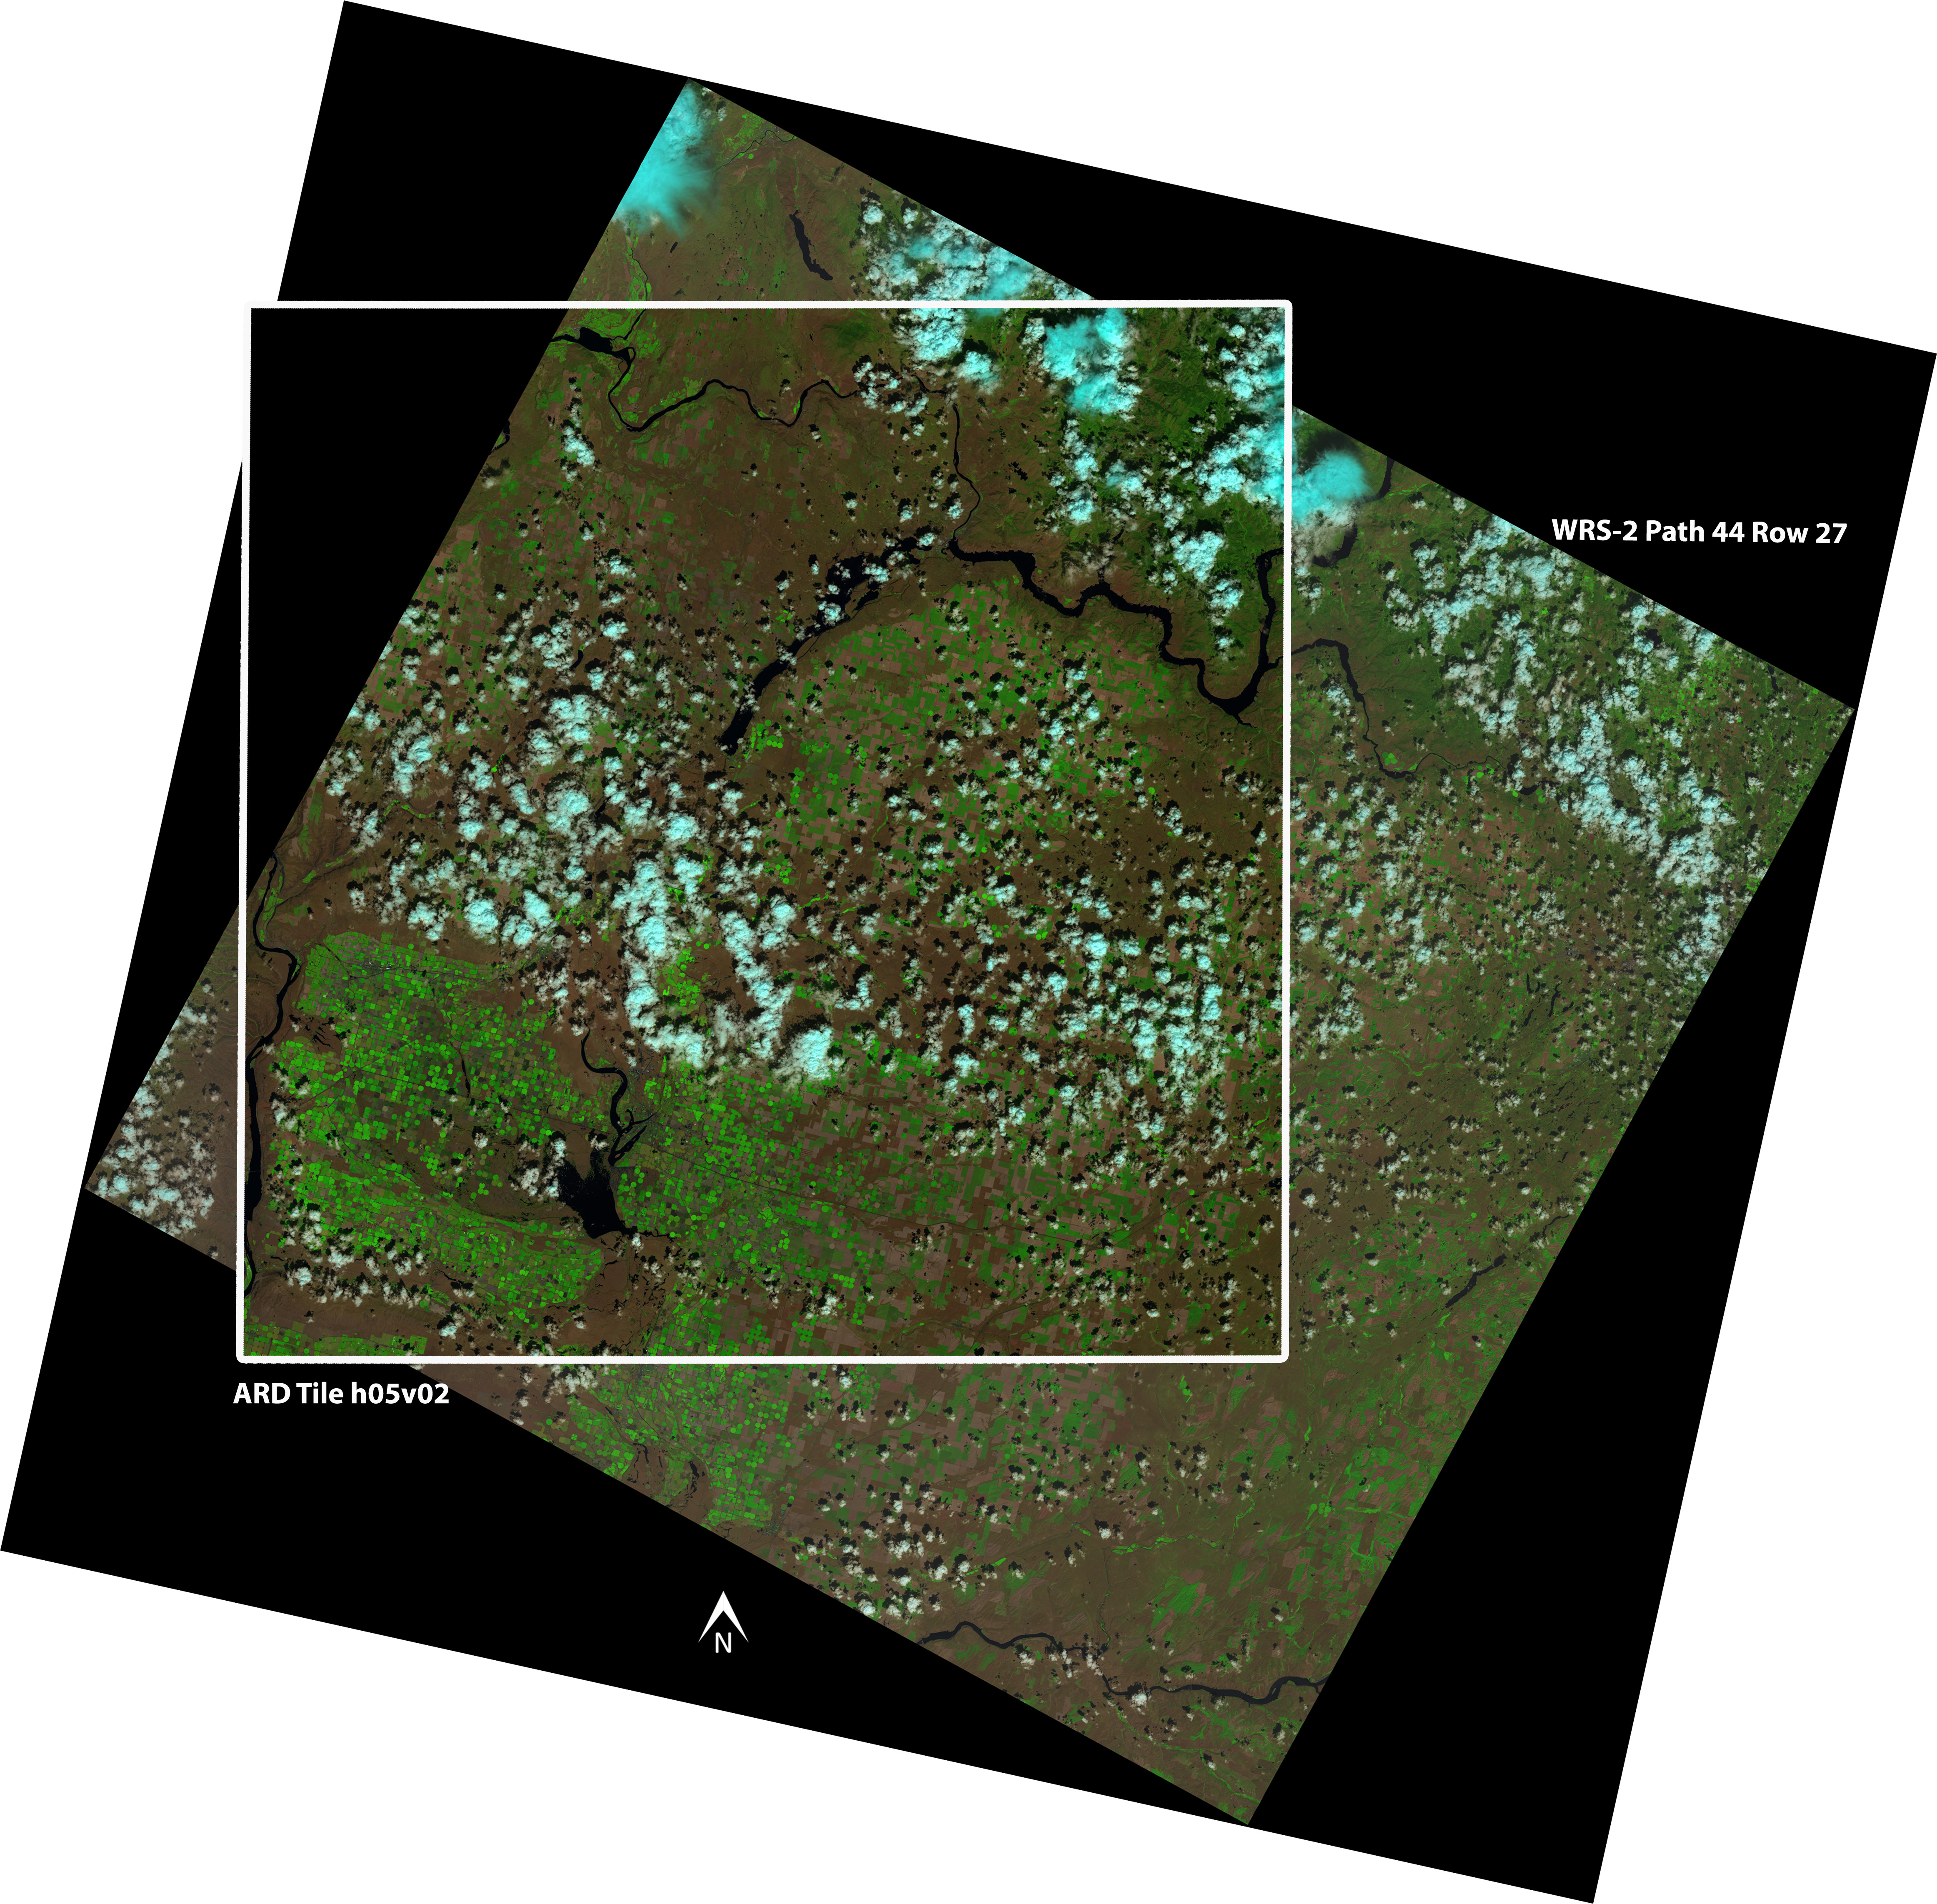 Landsat ARD Tile h05 v02 overlay on Landsat 8 WRS-2 Path 44 Row 27